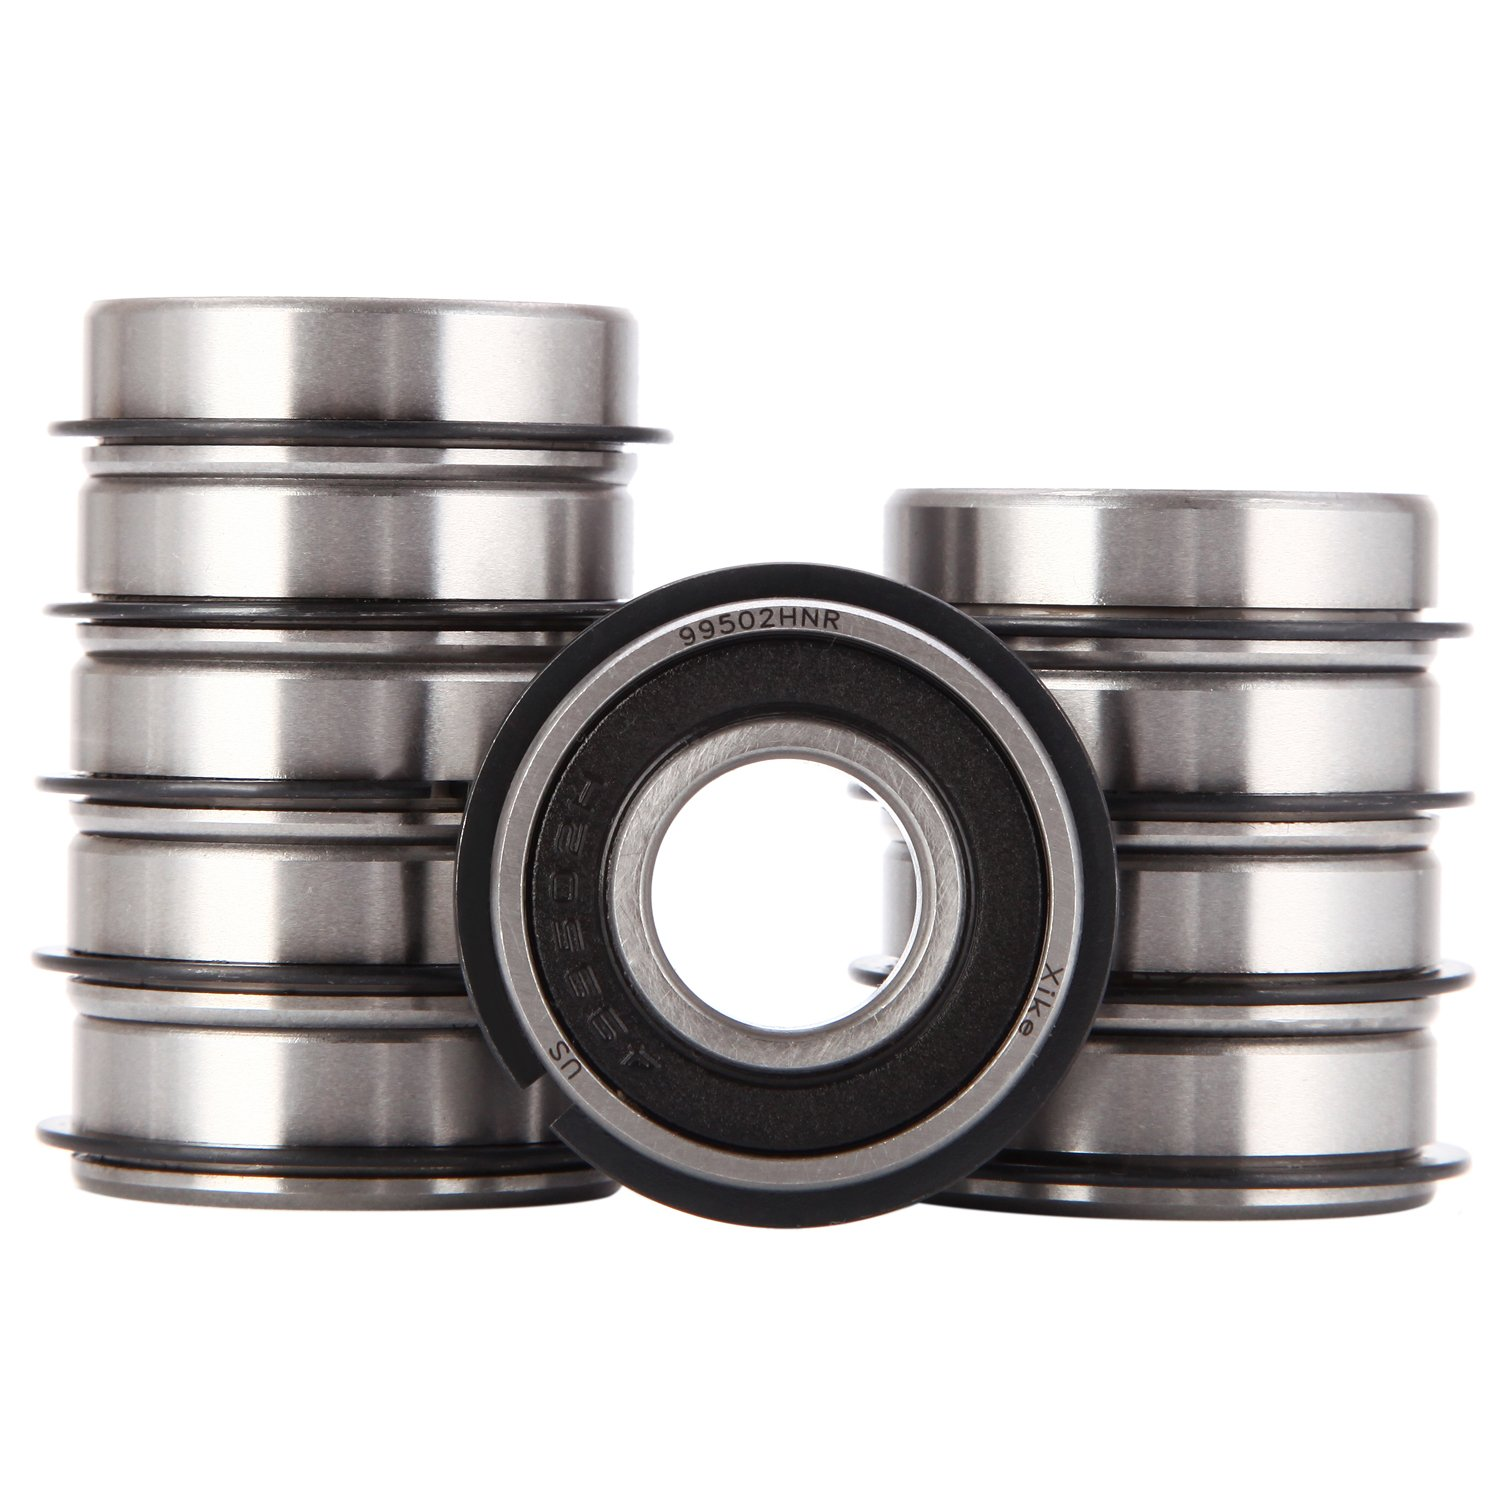 XiKe 10 Pack 99502HNR Ball Bearing ID 5/8'' x OD 1-3/8'' x Width 7/16'', Double Seal and Snap Ring, Stable Performance and Cost-Effective, Go Kart Wheel Mini Bikes, Mower and More.